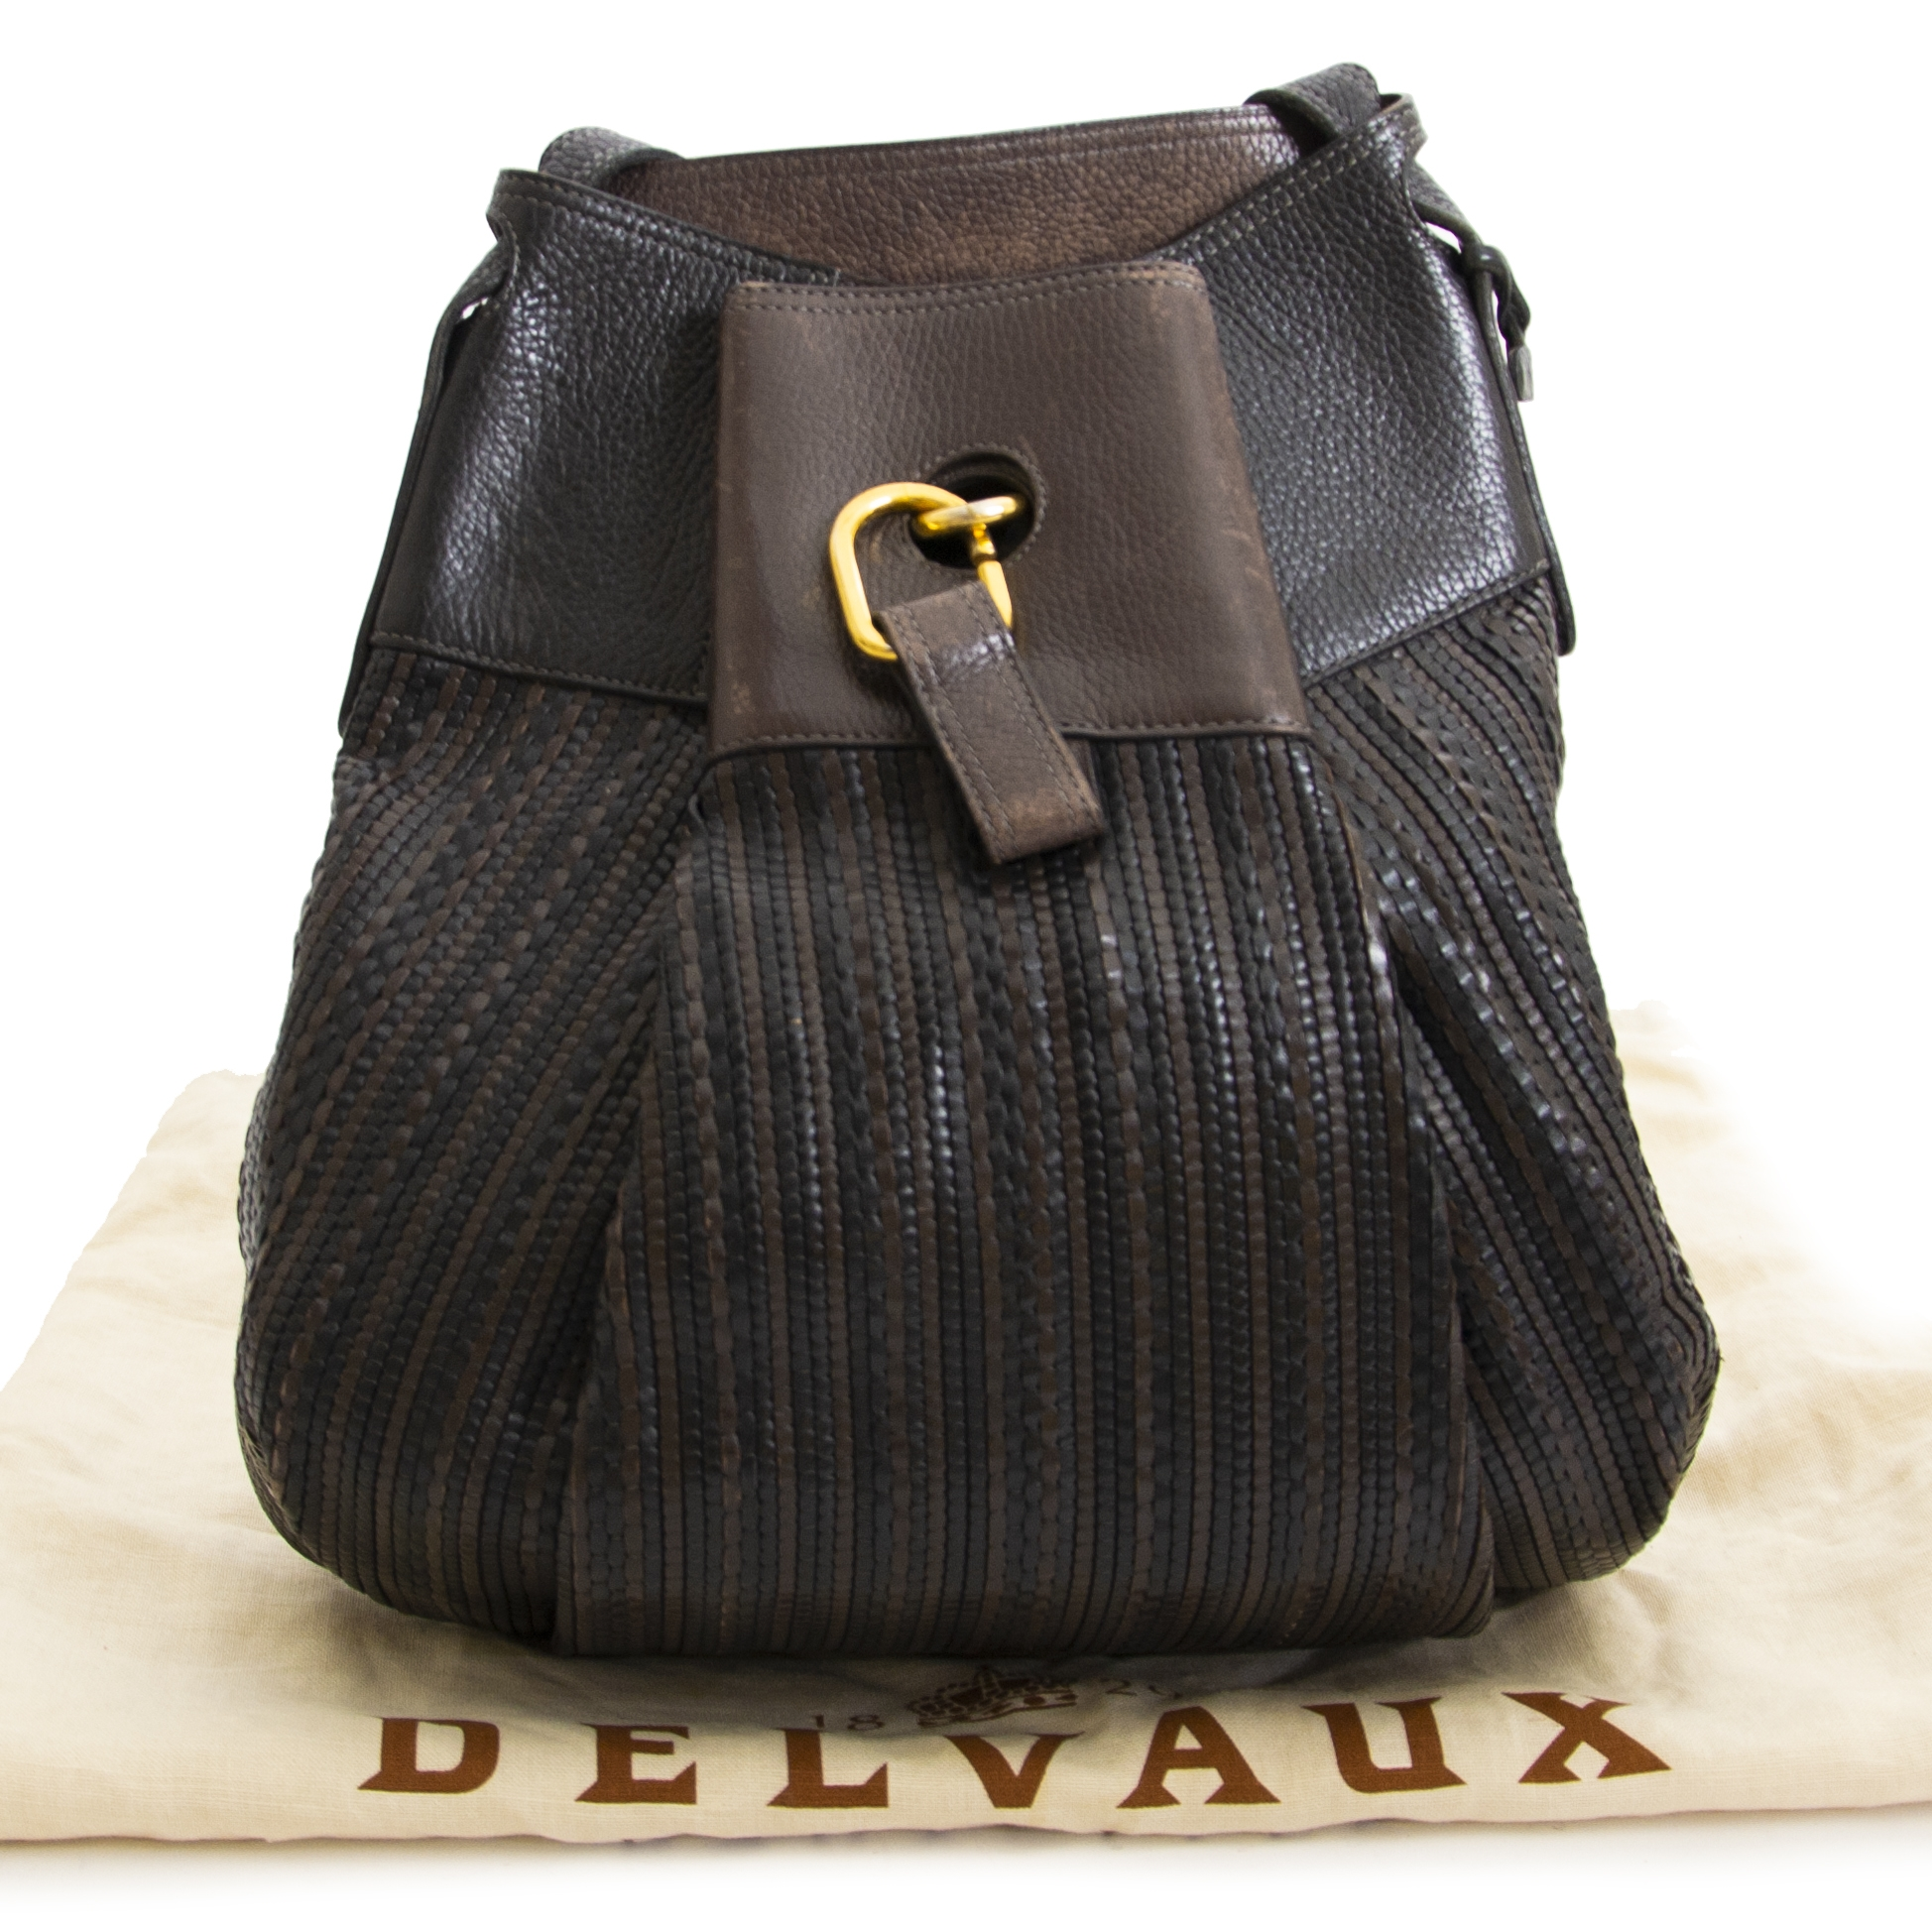 Delvaux Black and Brown Bicolor Tressé Faust Bag  now online at labellov.com for the best price